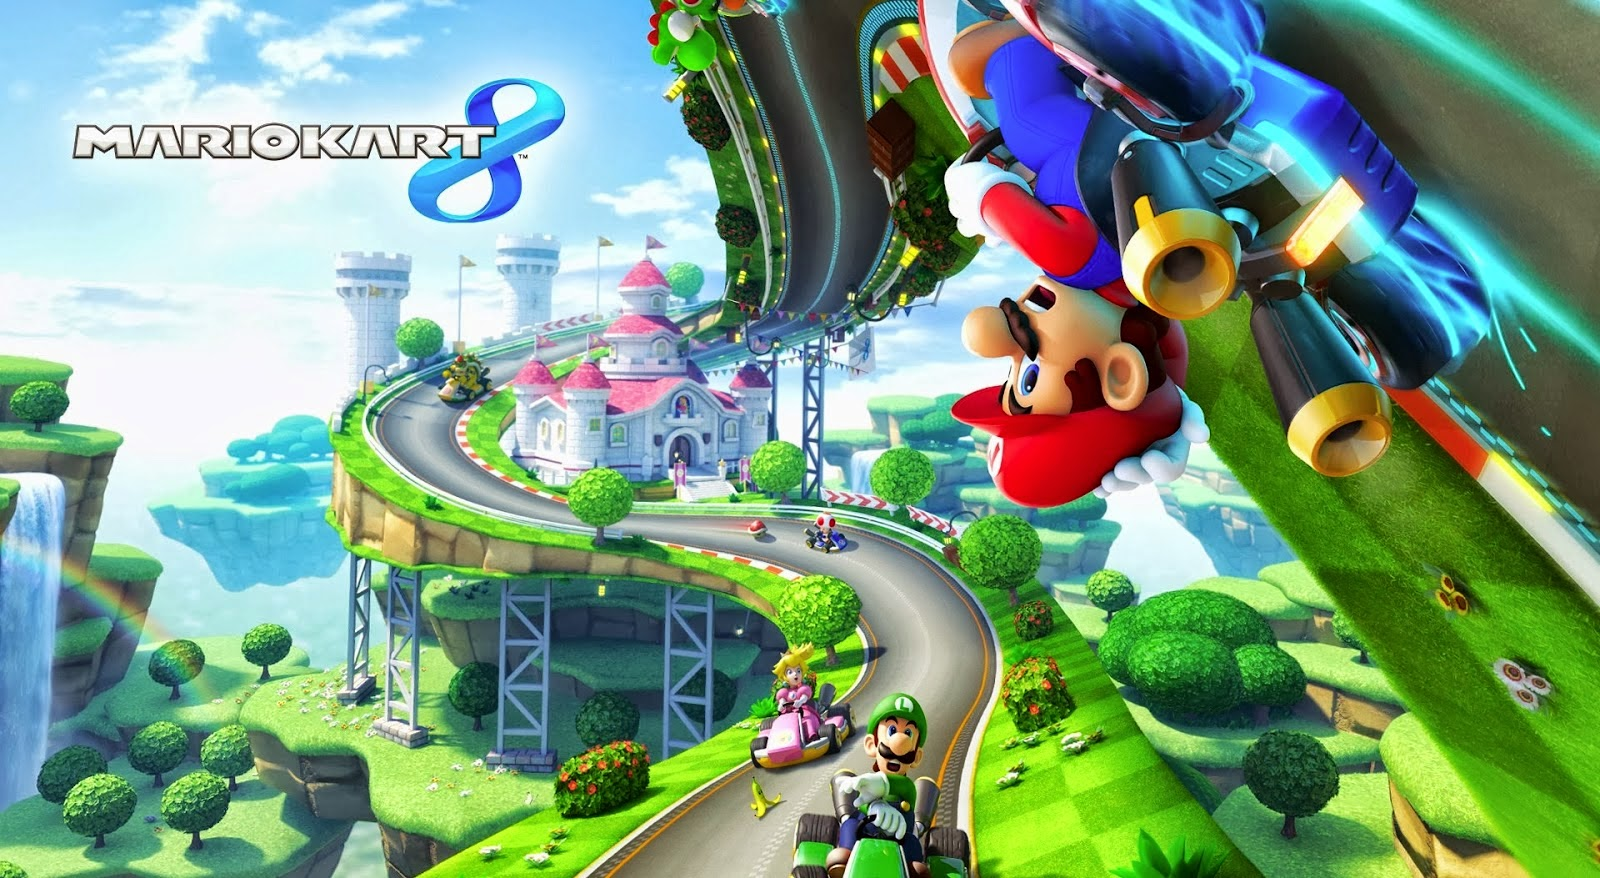 Mario Kart 8 Background: Mario Kart 8 Nintendo Wii U Review